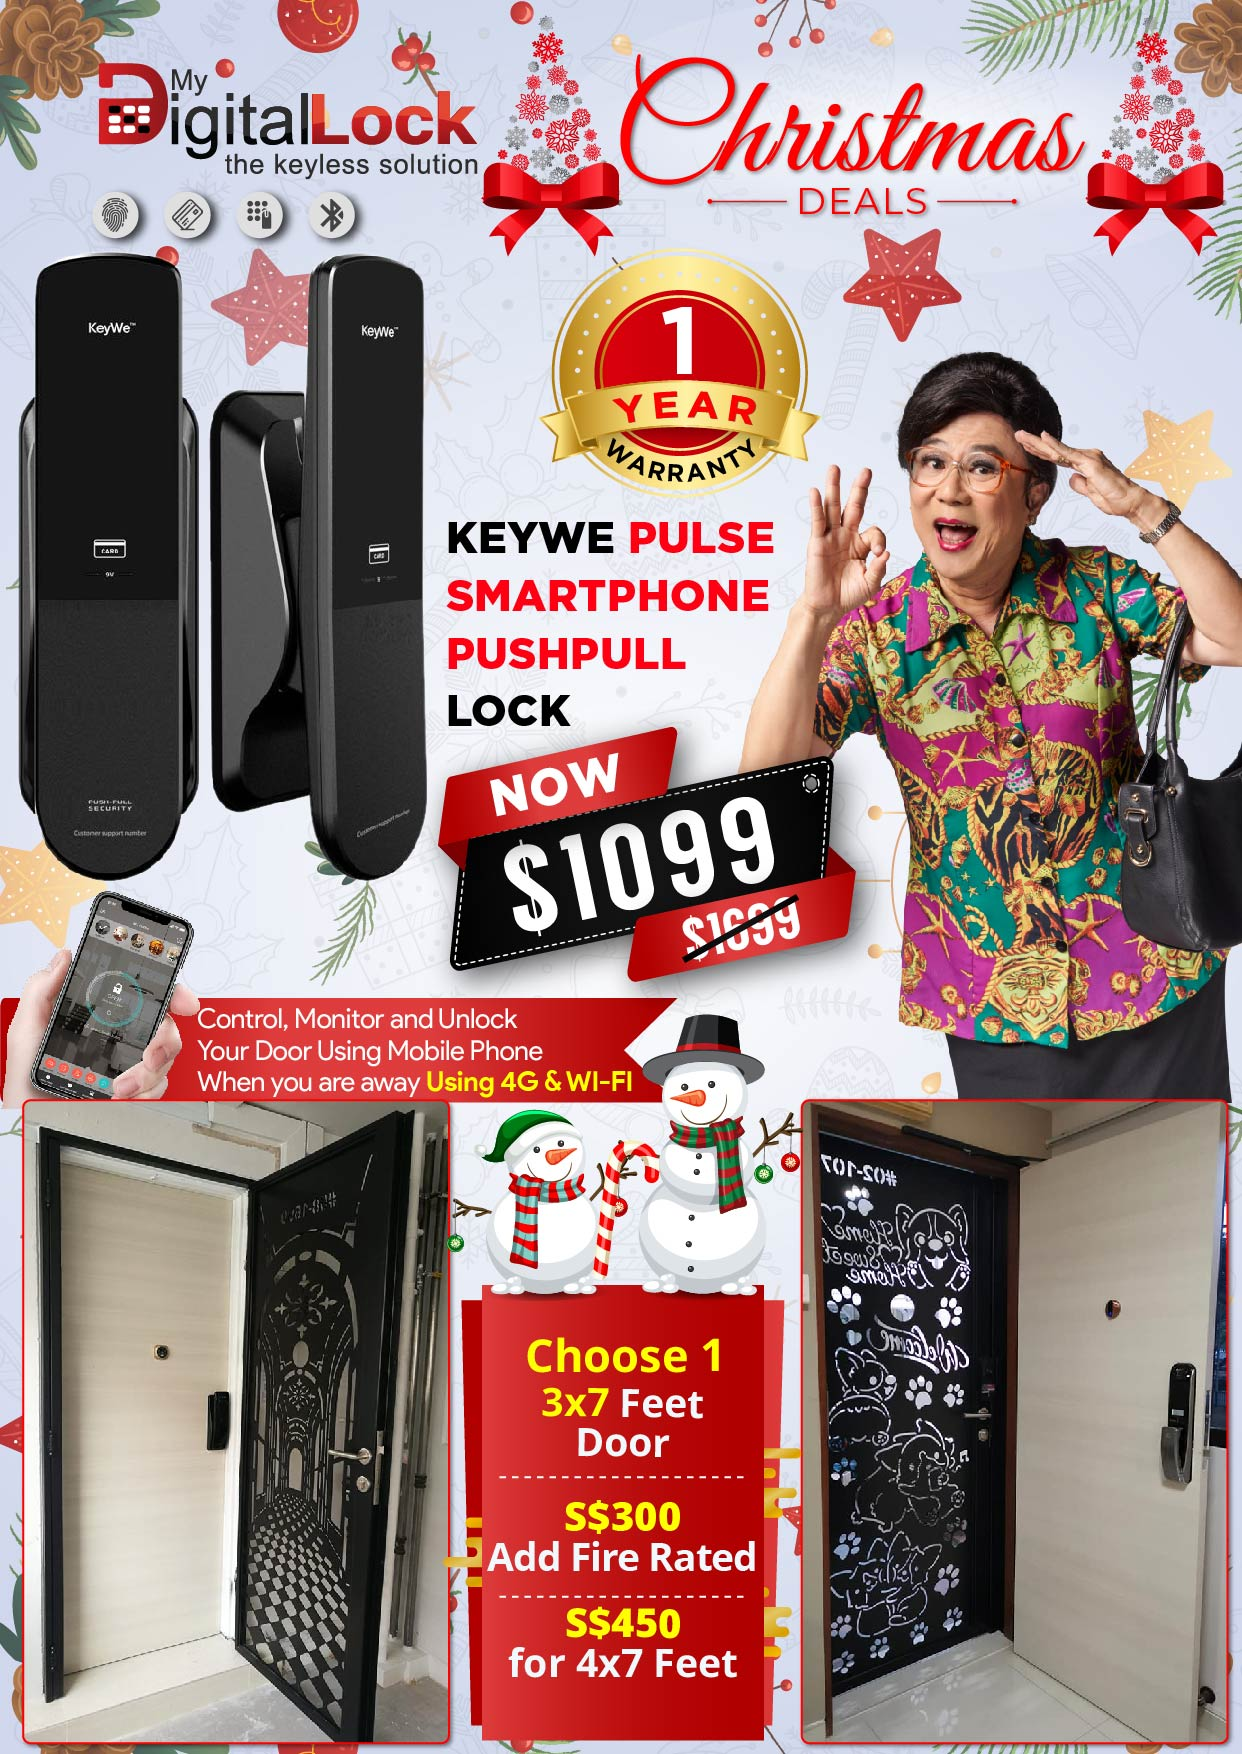 My Digital Lock KeyWe PushPull and Door Christmas Promotion 2019